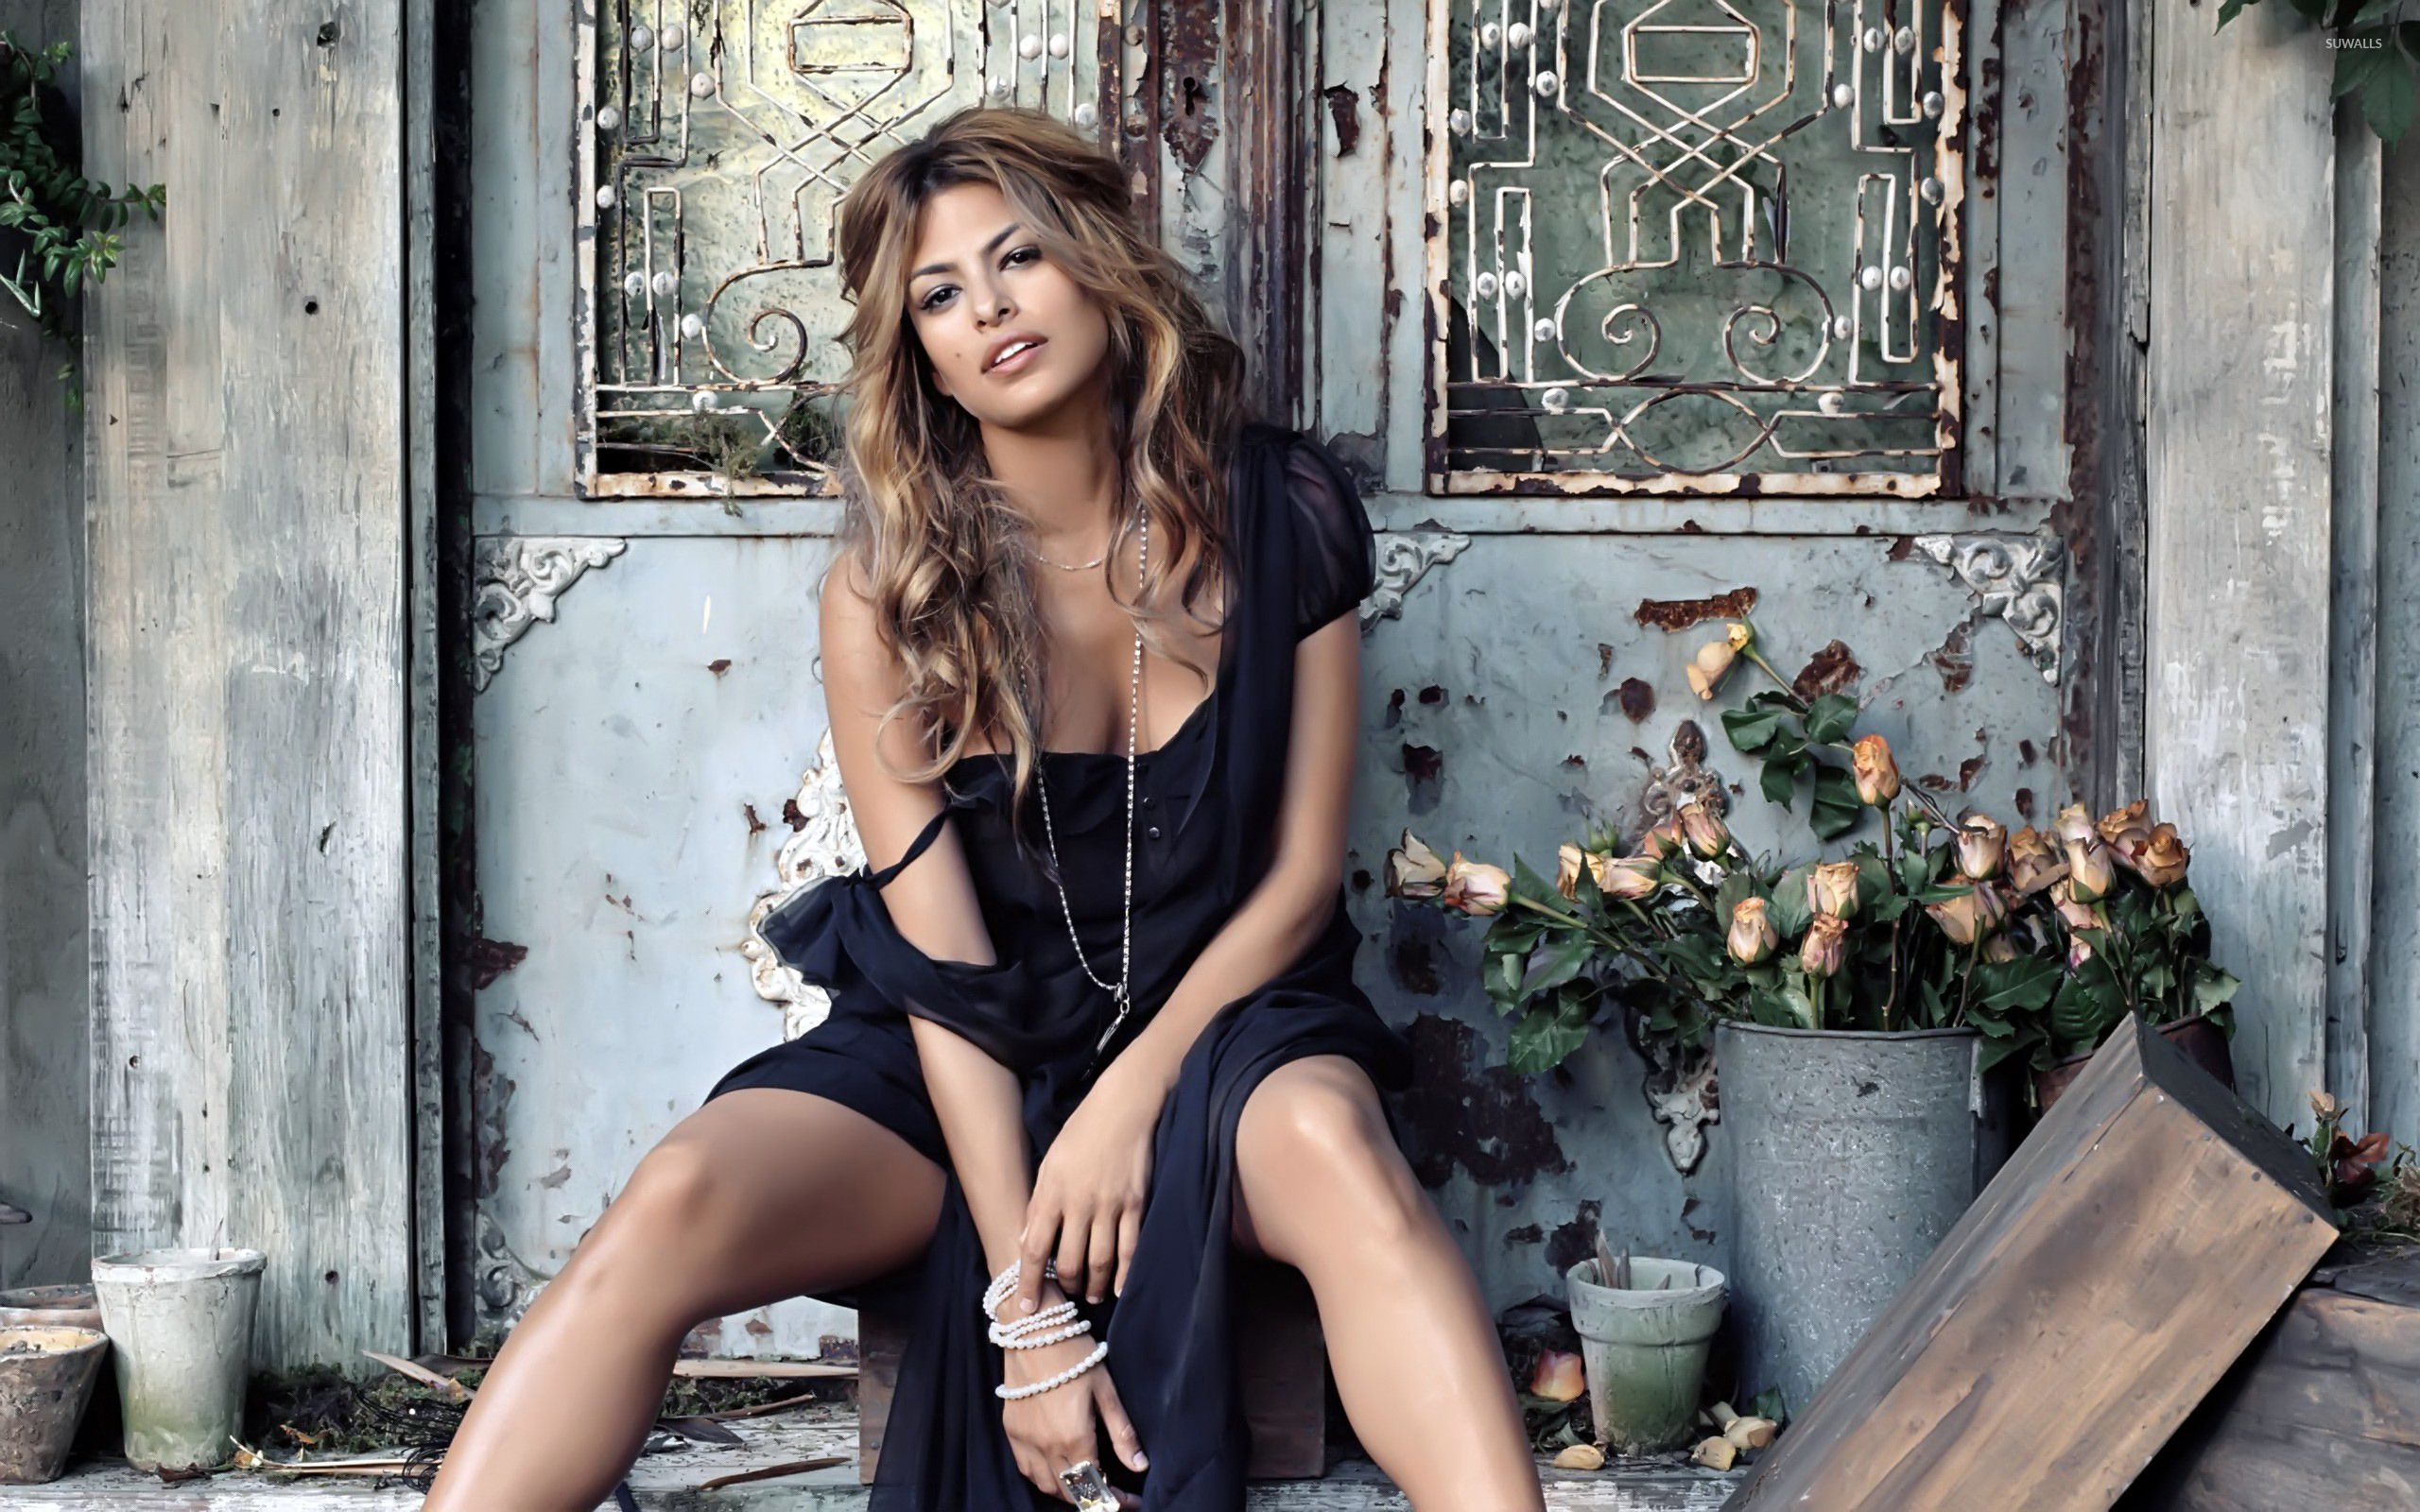 hd eva mendes wallpapers and photos hd celebrities wallpapers